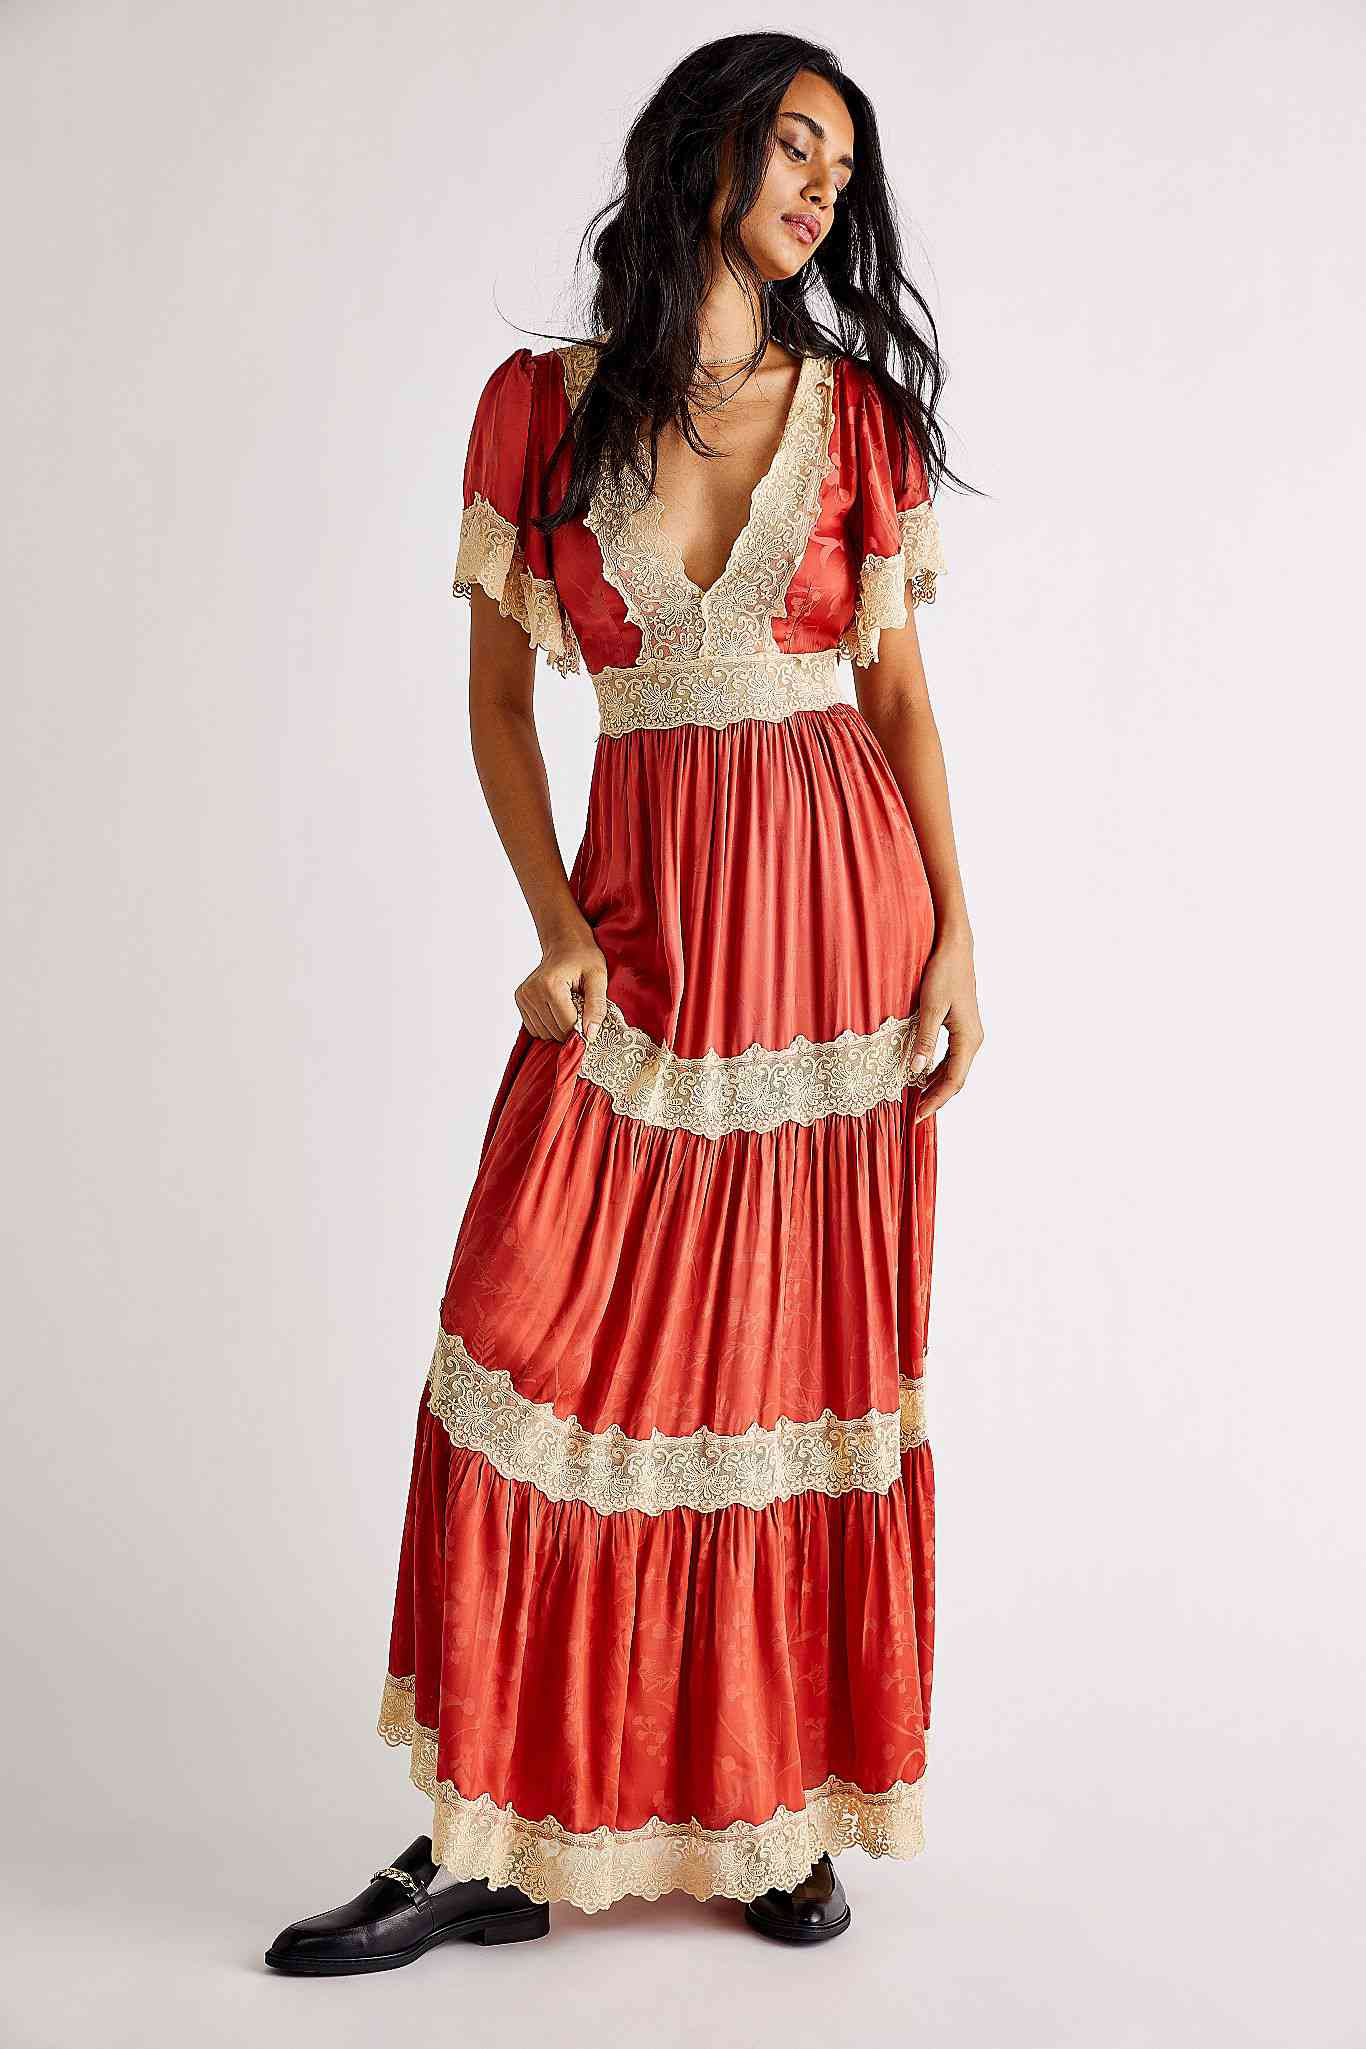 Spell & They Gypsy x Free People Ocean Gown $379